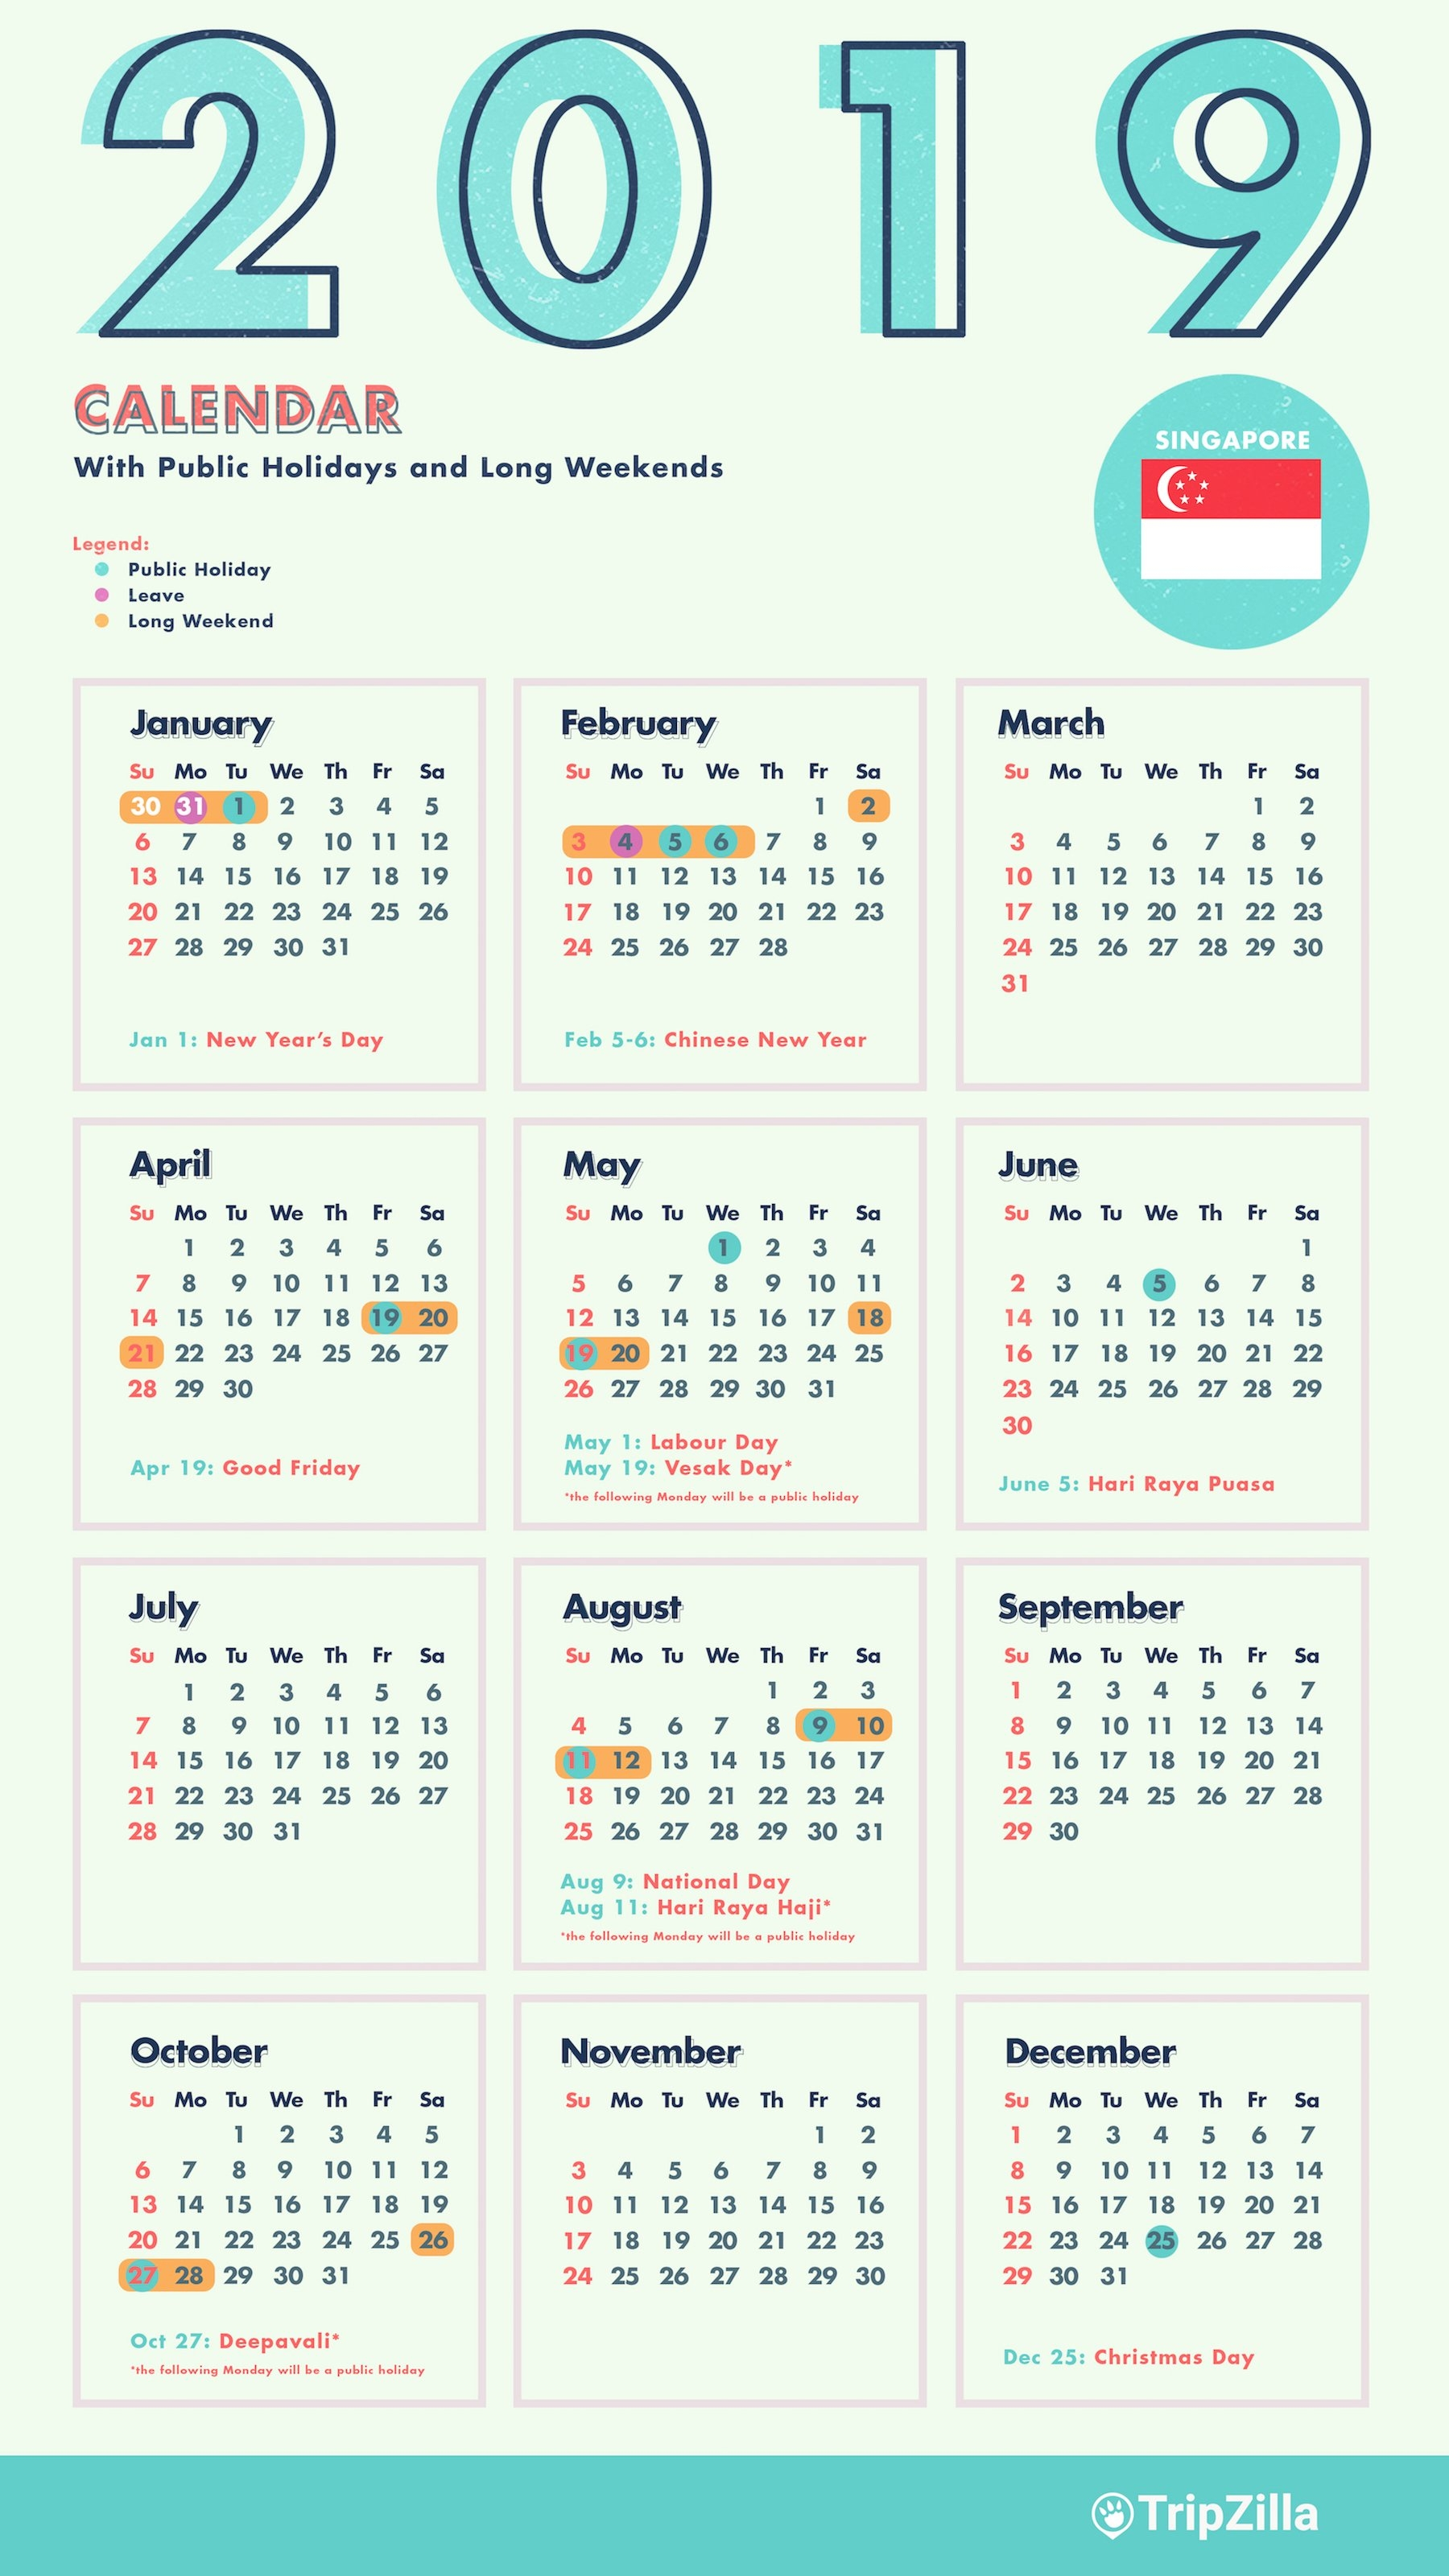 6 Long Weekends In Singapore In 2019 (Bonus Calendar & Cheatsheet) Calendar 2019 Leave